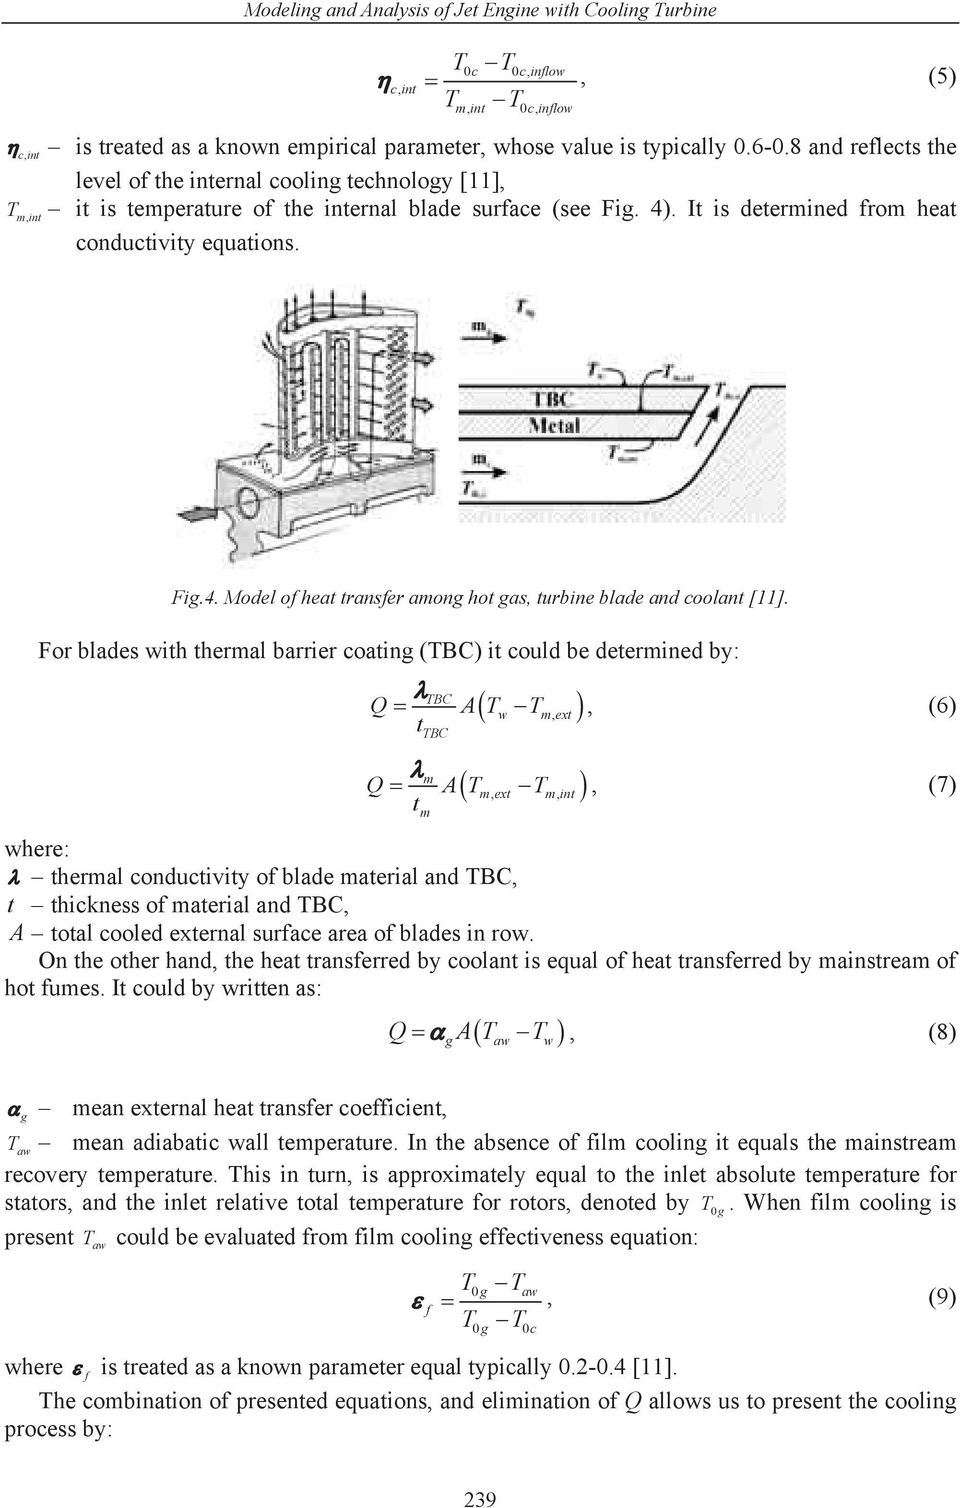 MODELING AND ANALYSIS OF JET ENGINE WITH COOLING TURBINE - PDF